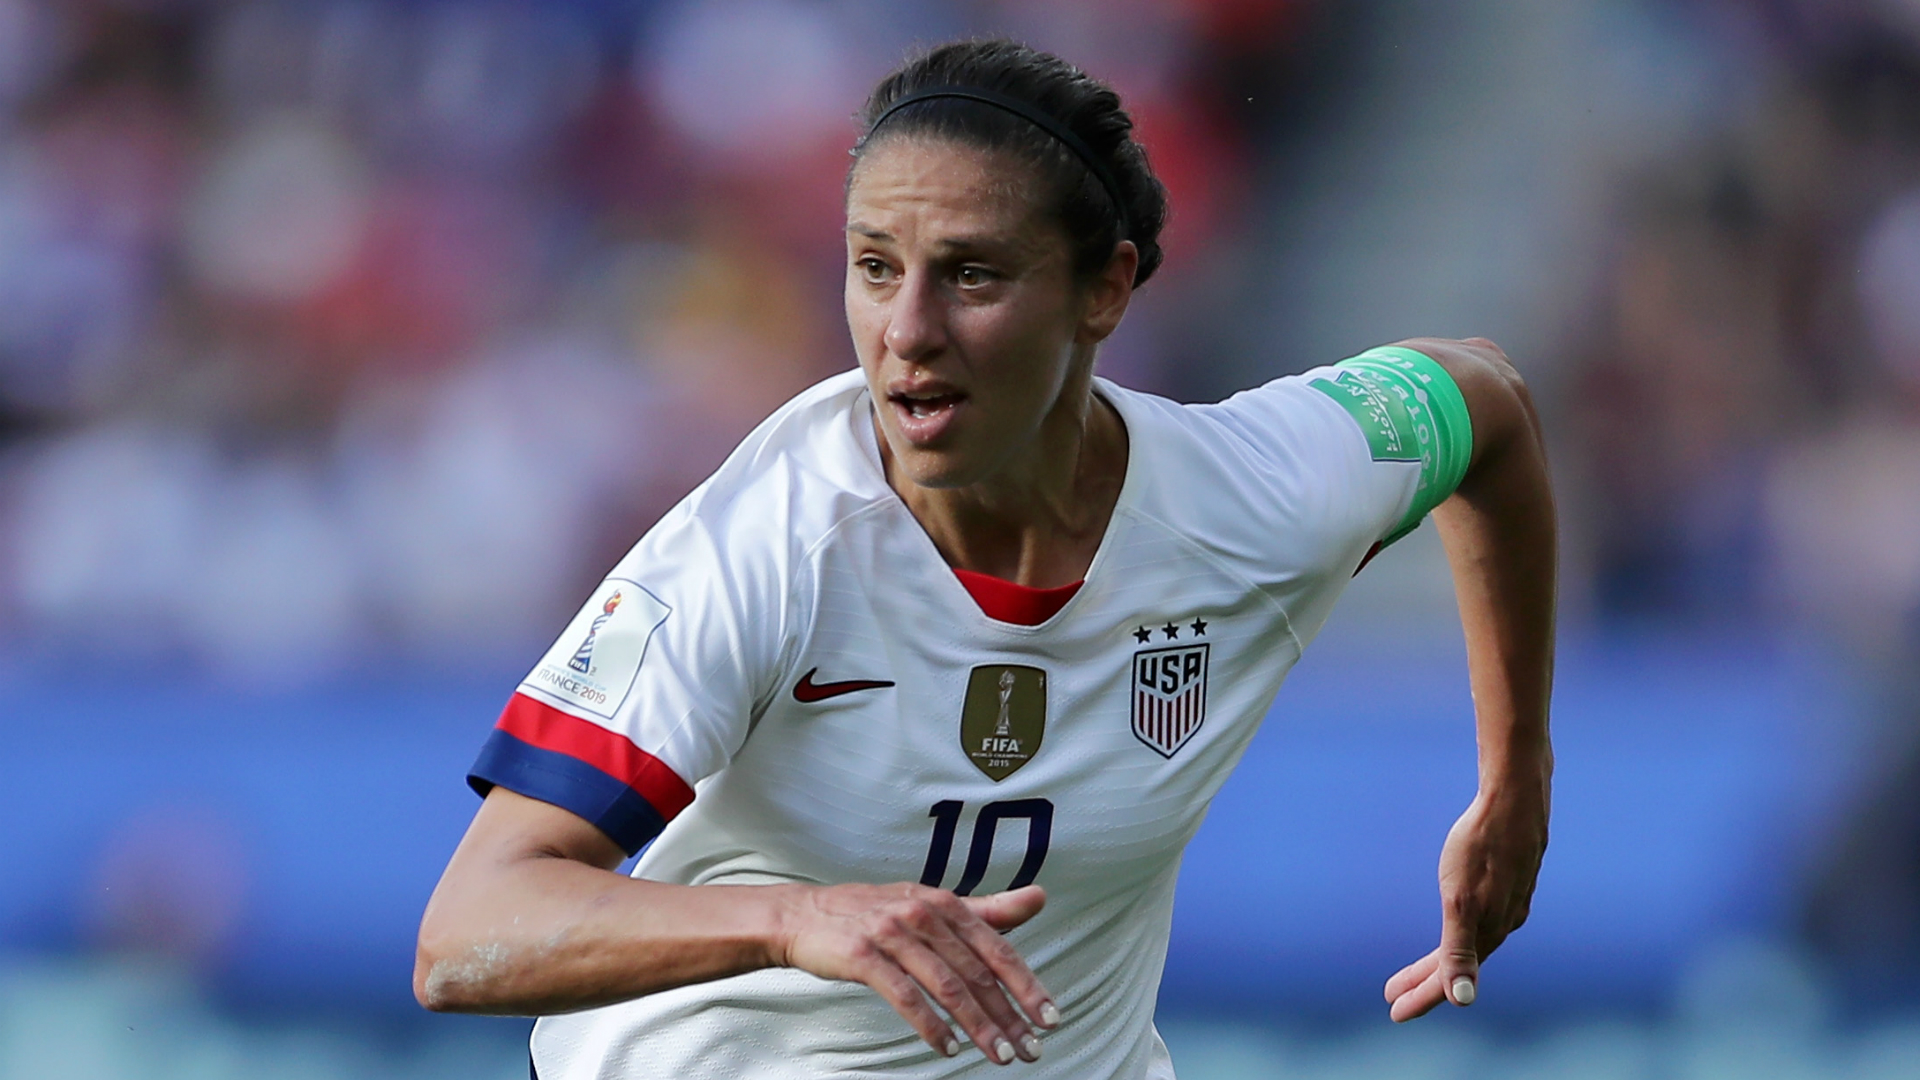 I know I could probably do it - Carli Lloyd on being an NFL kicker